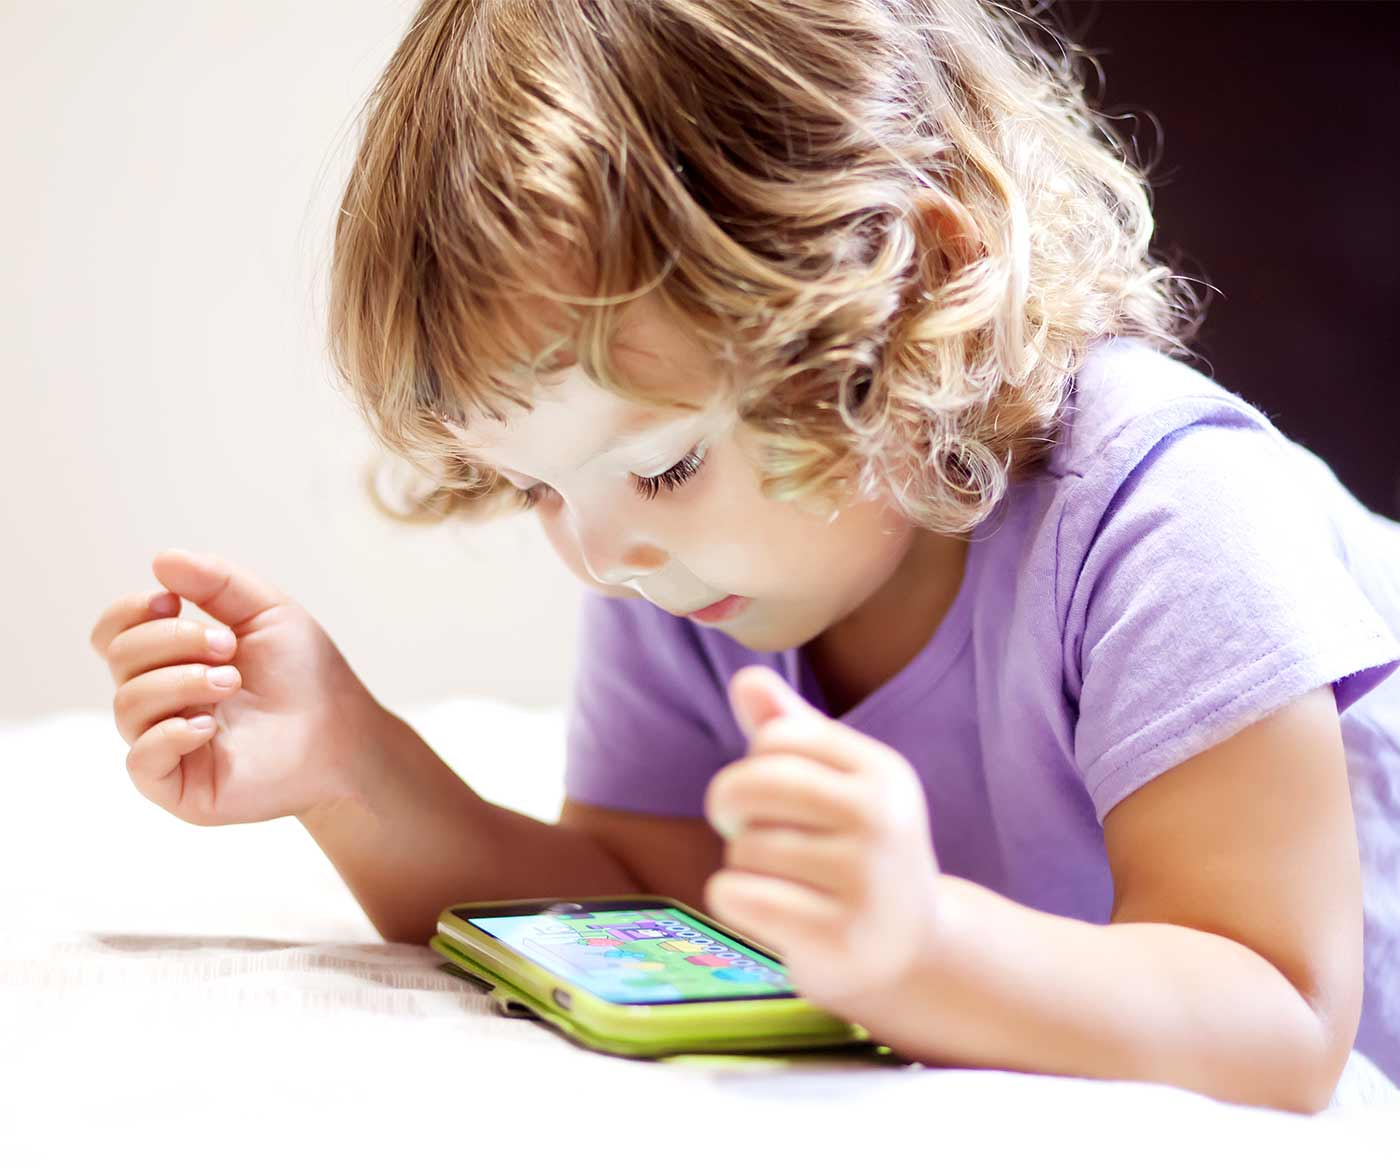 A little girl with a smart phone, redirecting toddler behavior